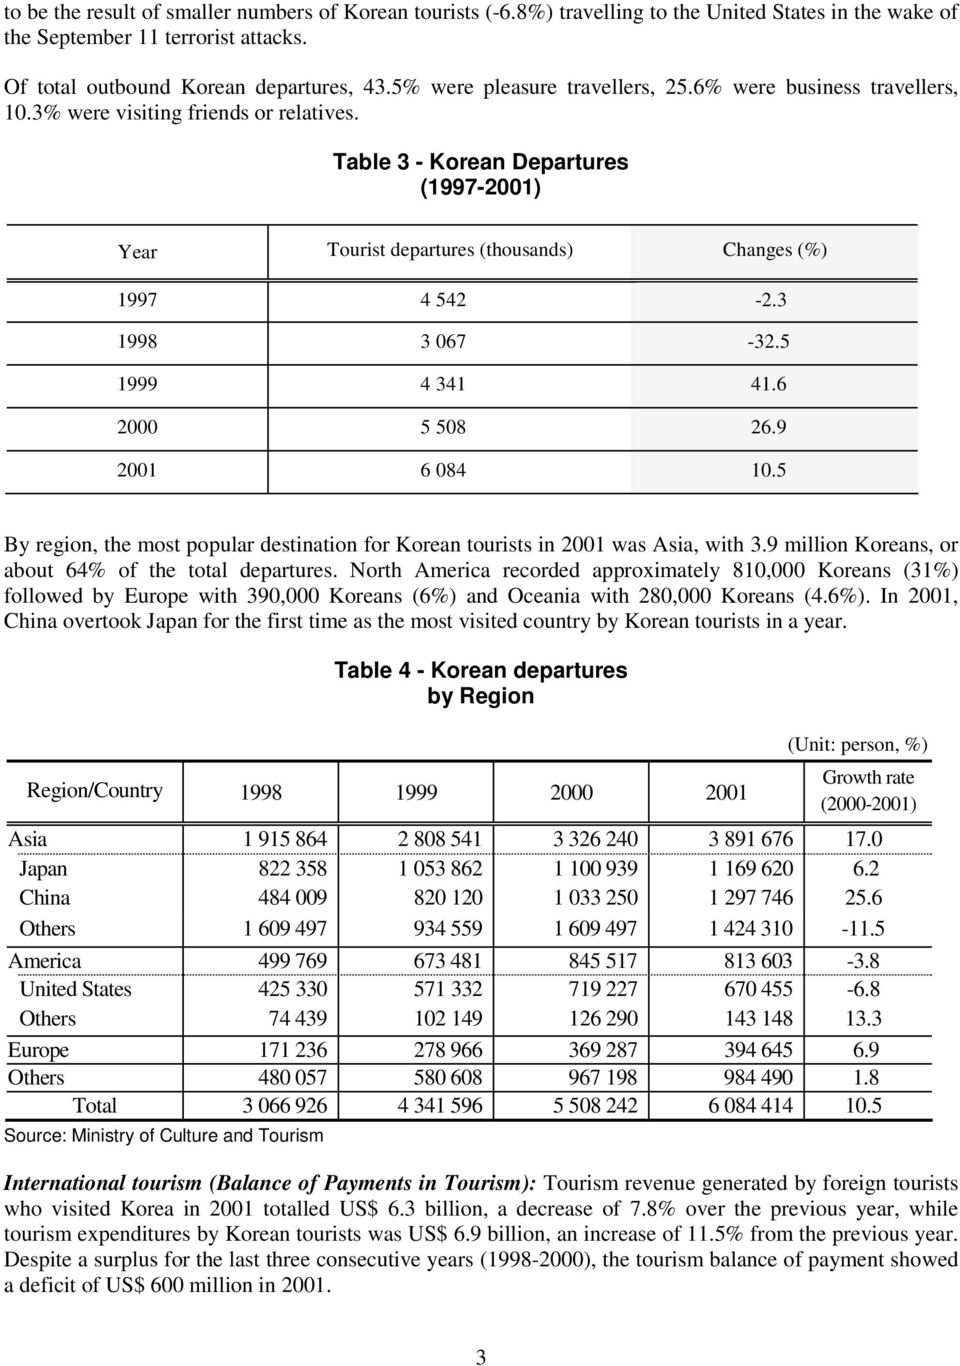 Table 3 - Korean Departures (1997-2001) Year Tourist departures (thousands) Changes (%) 1997 4 542-2.3 1998 3 067-32.5 1999 4 341 41.6 2000 5 508 26.9 2001 6 084 10.